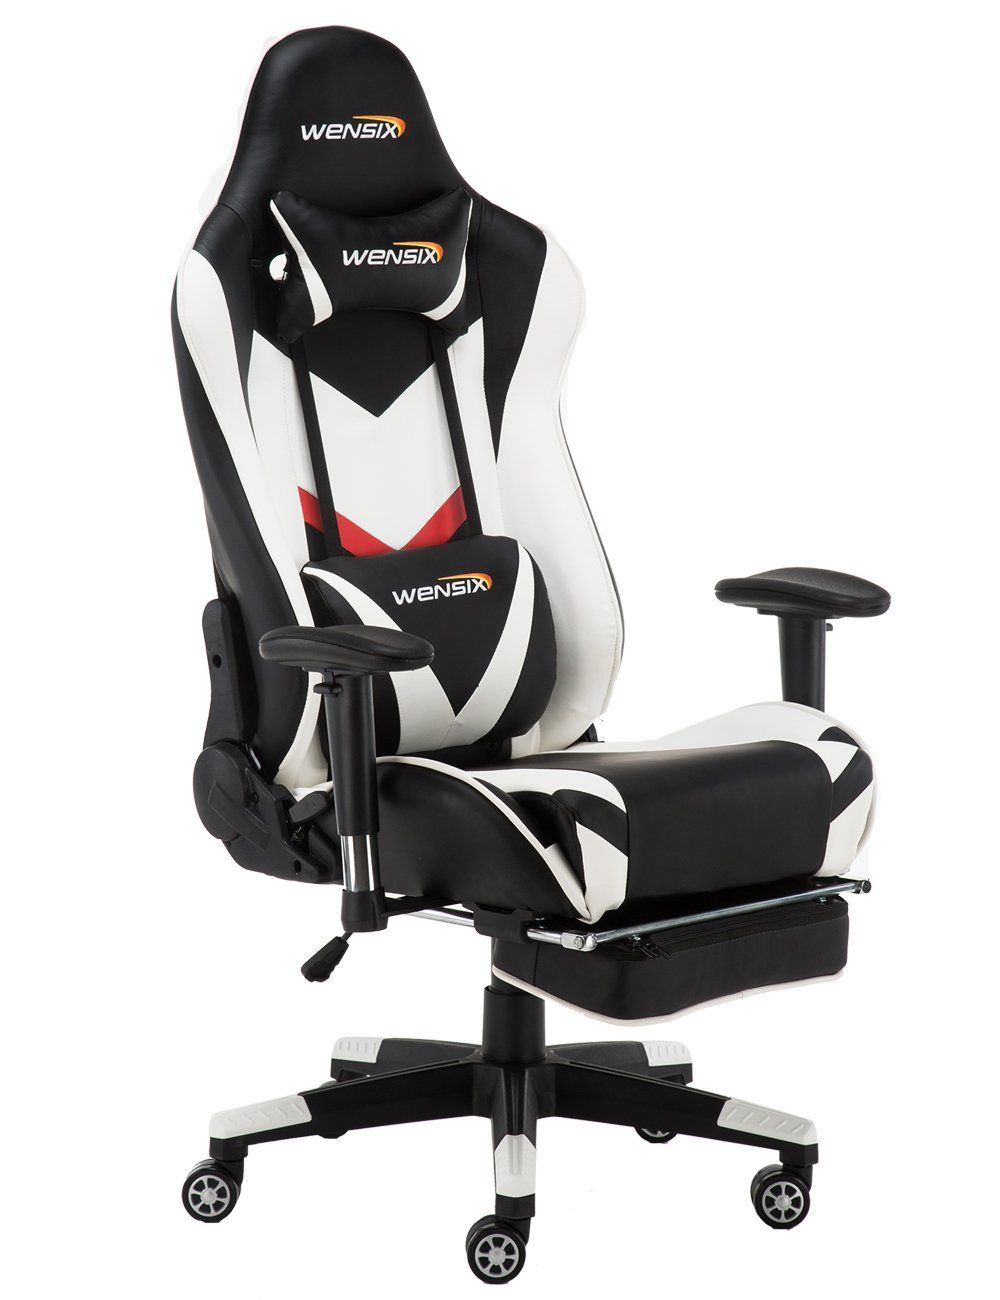 Wensix Gaming Chair High Back Computer Chair With Adjusting Footrest Ergonomic Designs Extremely Durable Pu Leather Steel Frame Racing Chair White Price